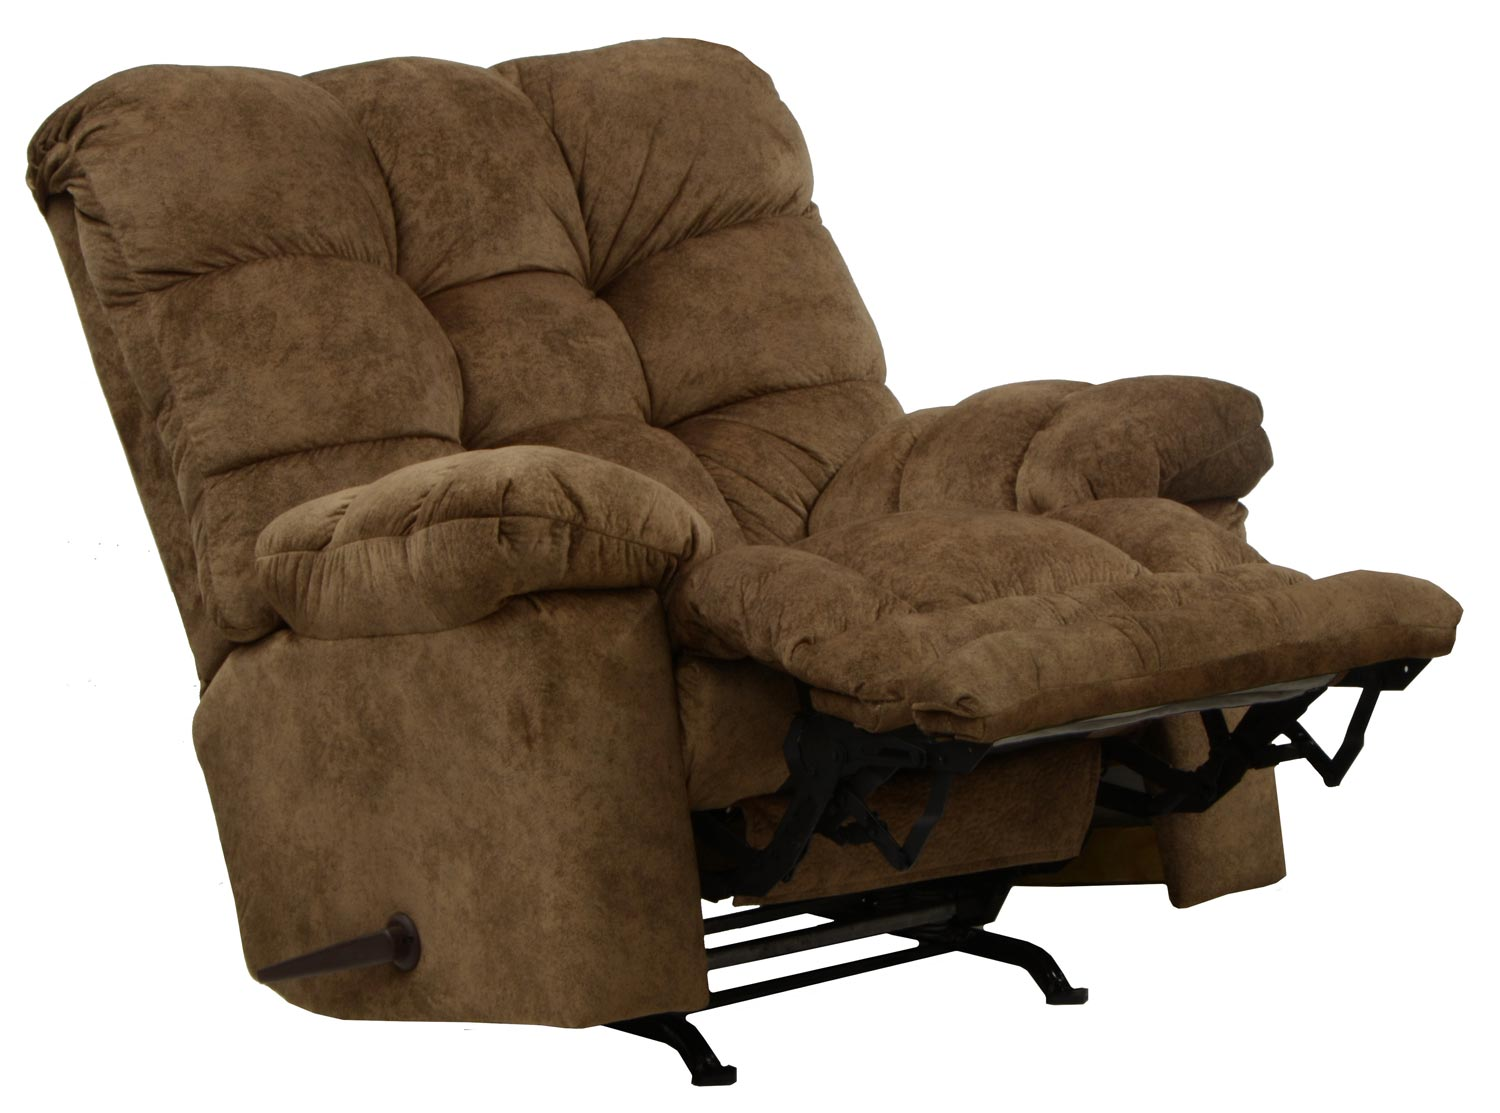 Catnapper bronson chaise rocker recliner with x tra for Catnapper reclining chaise